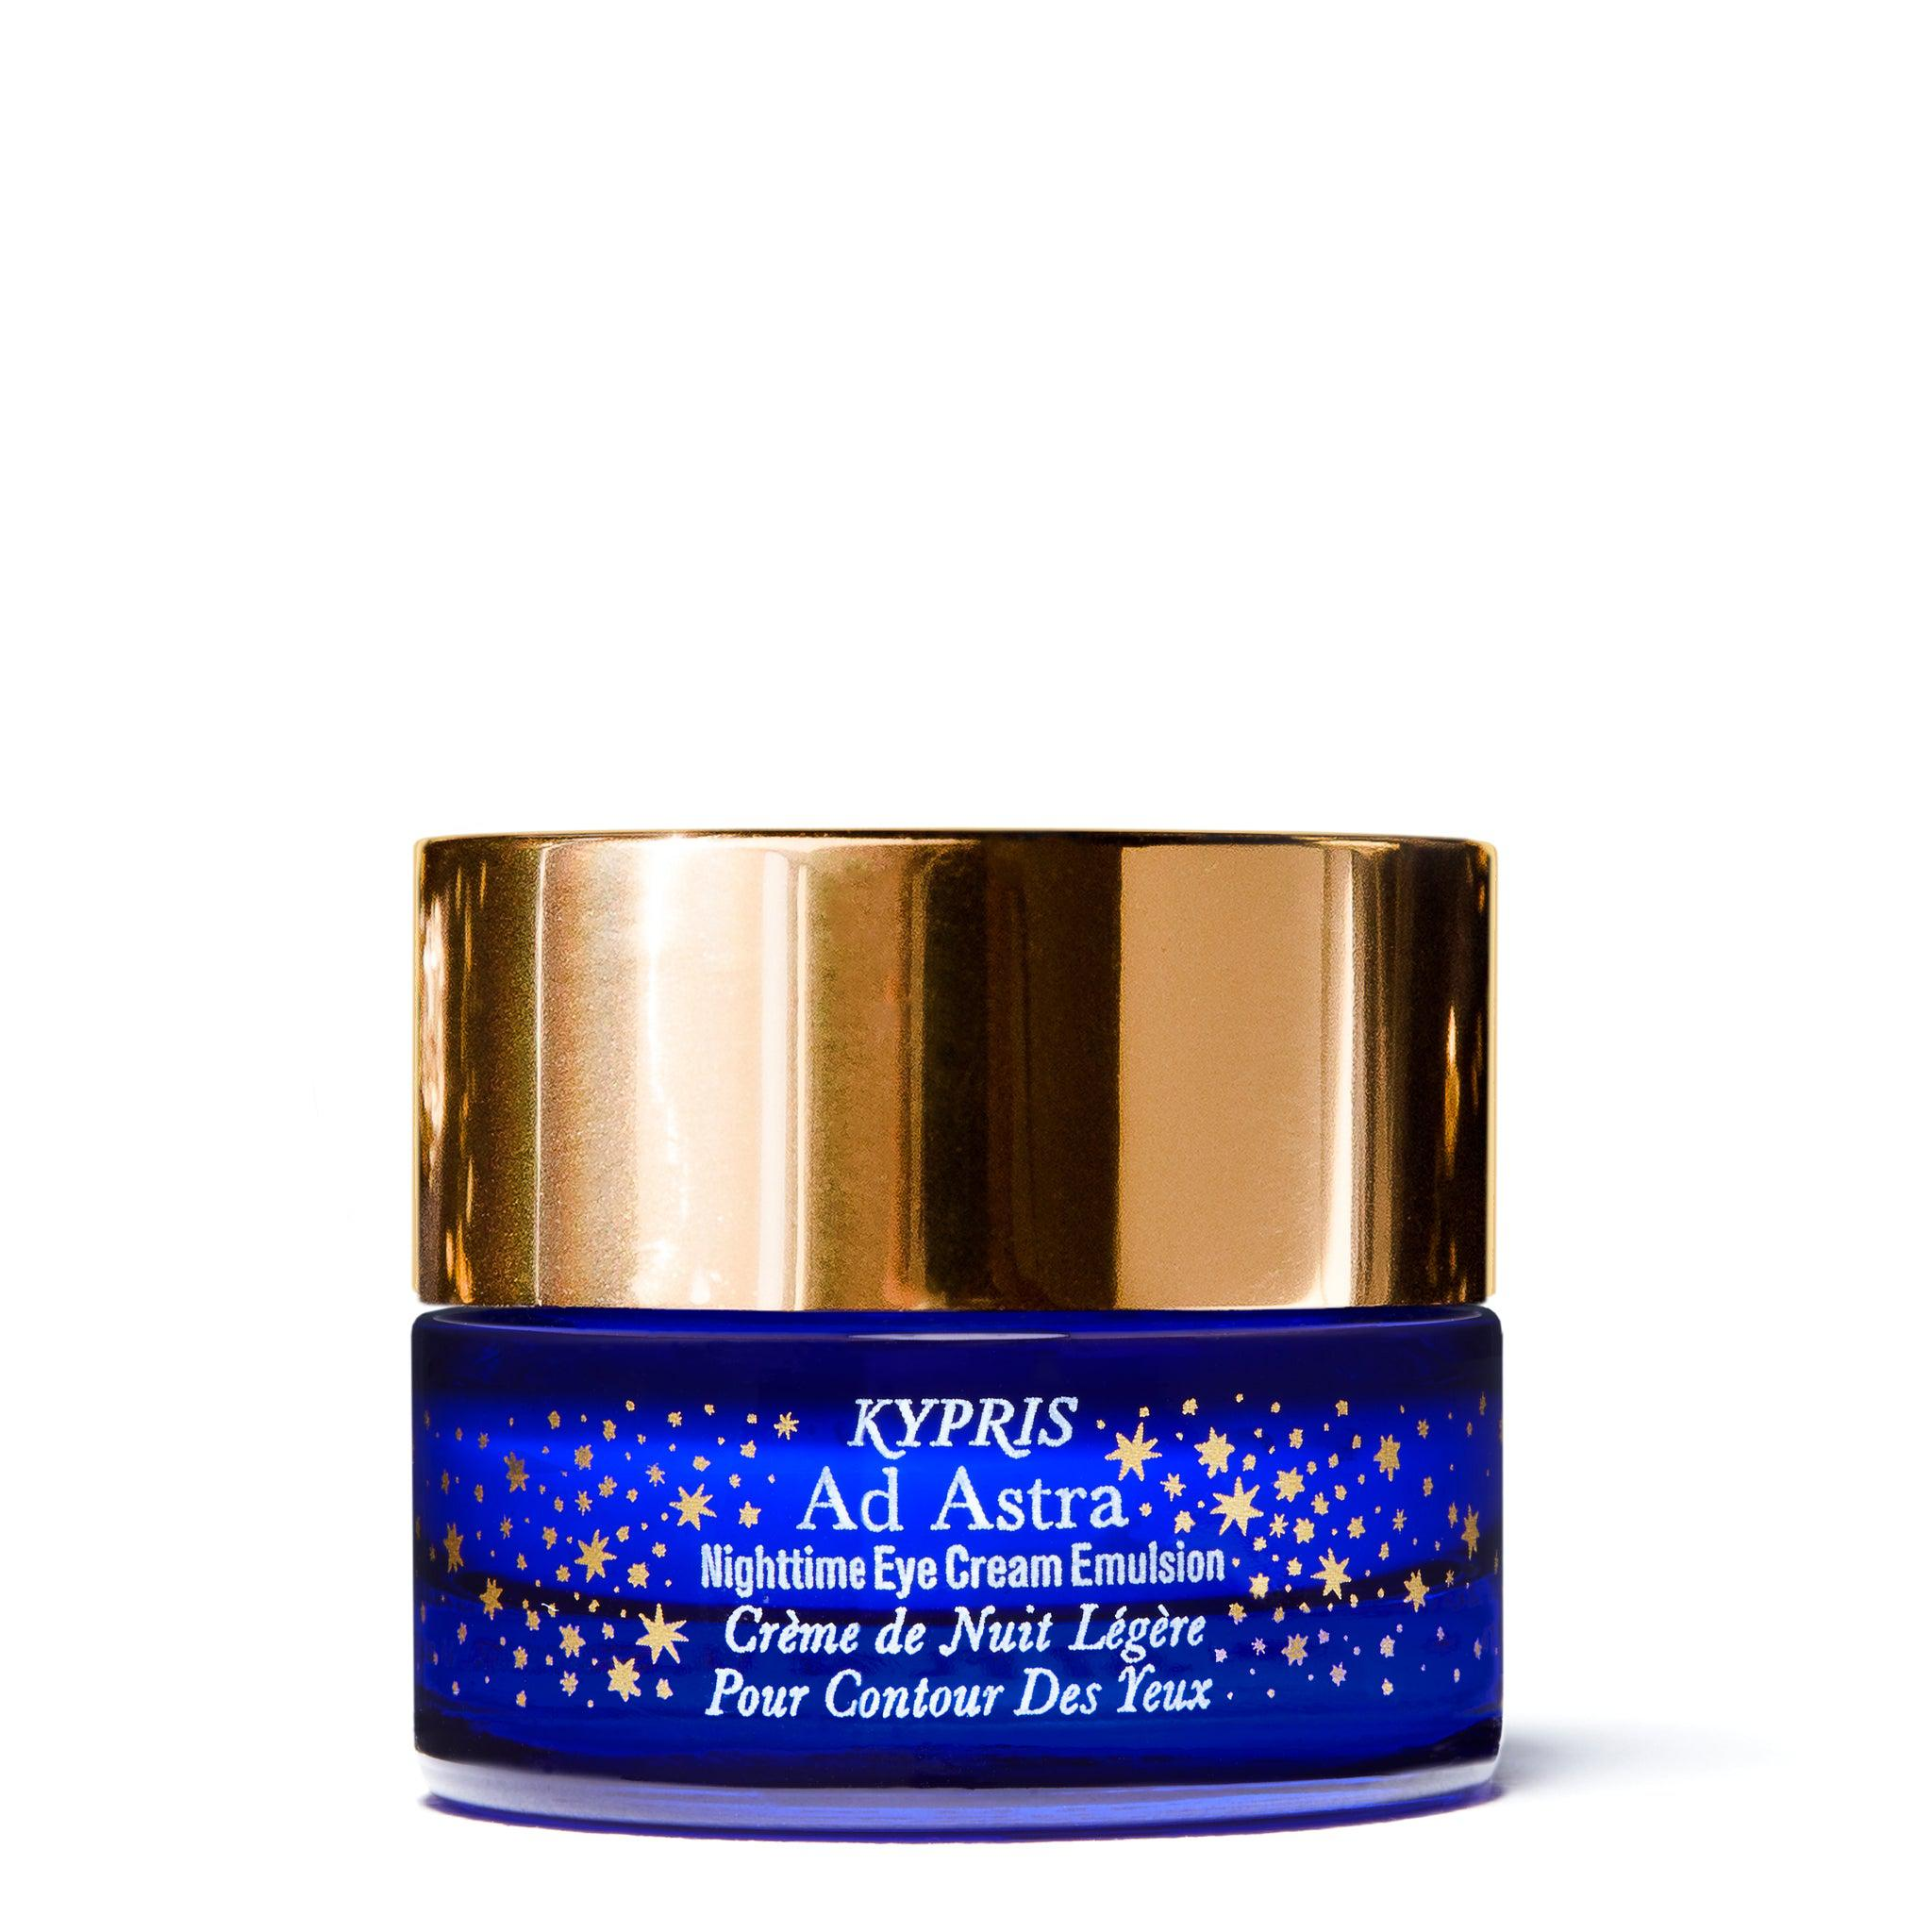 Ad Astra: Nighttime Eye Cream Emulsion